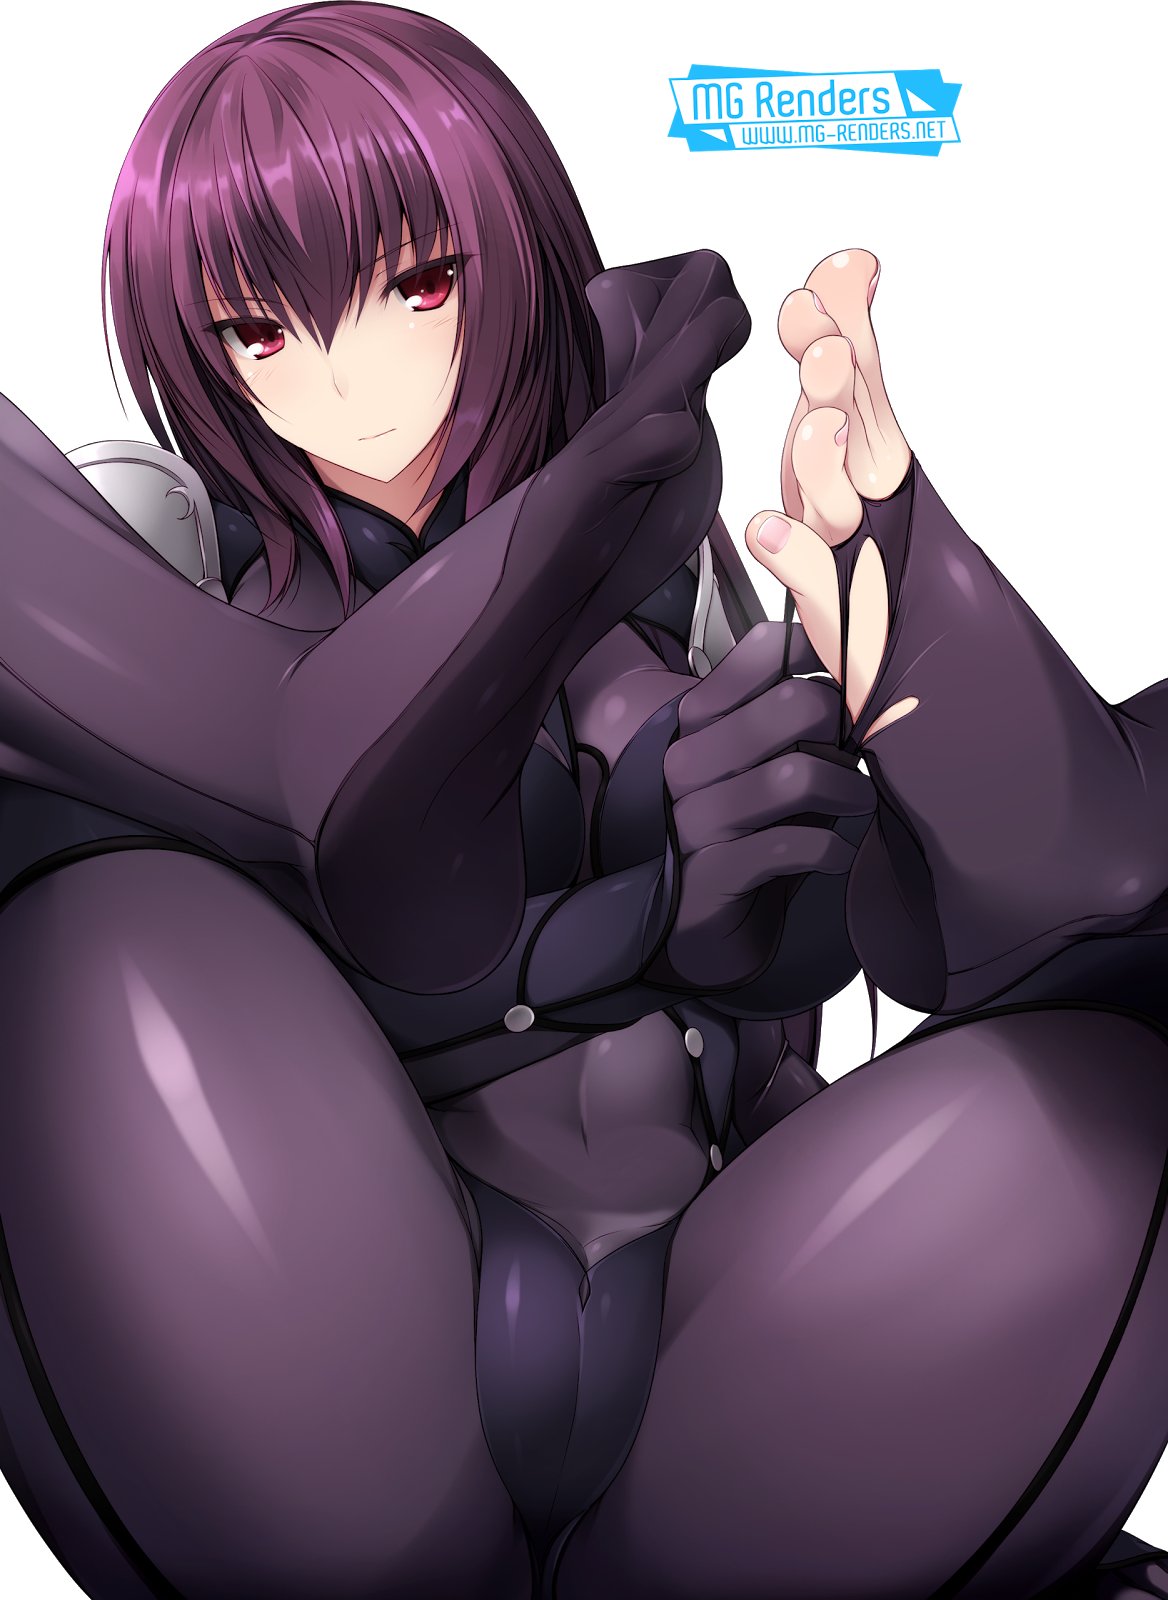 Tags: Anime, Render,  Bodysuit,  Fate Grand Order,  Feet,  Lancer,  Naturalton,  Pov Feet,  Scathach,  Spread legs,  Toes,  PNG, Image, Picture